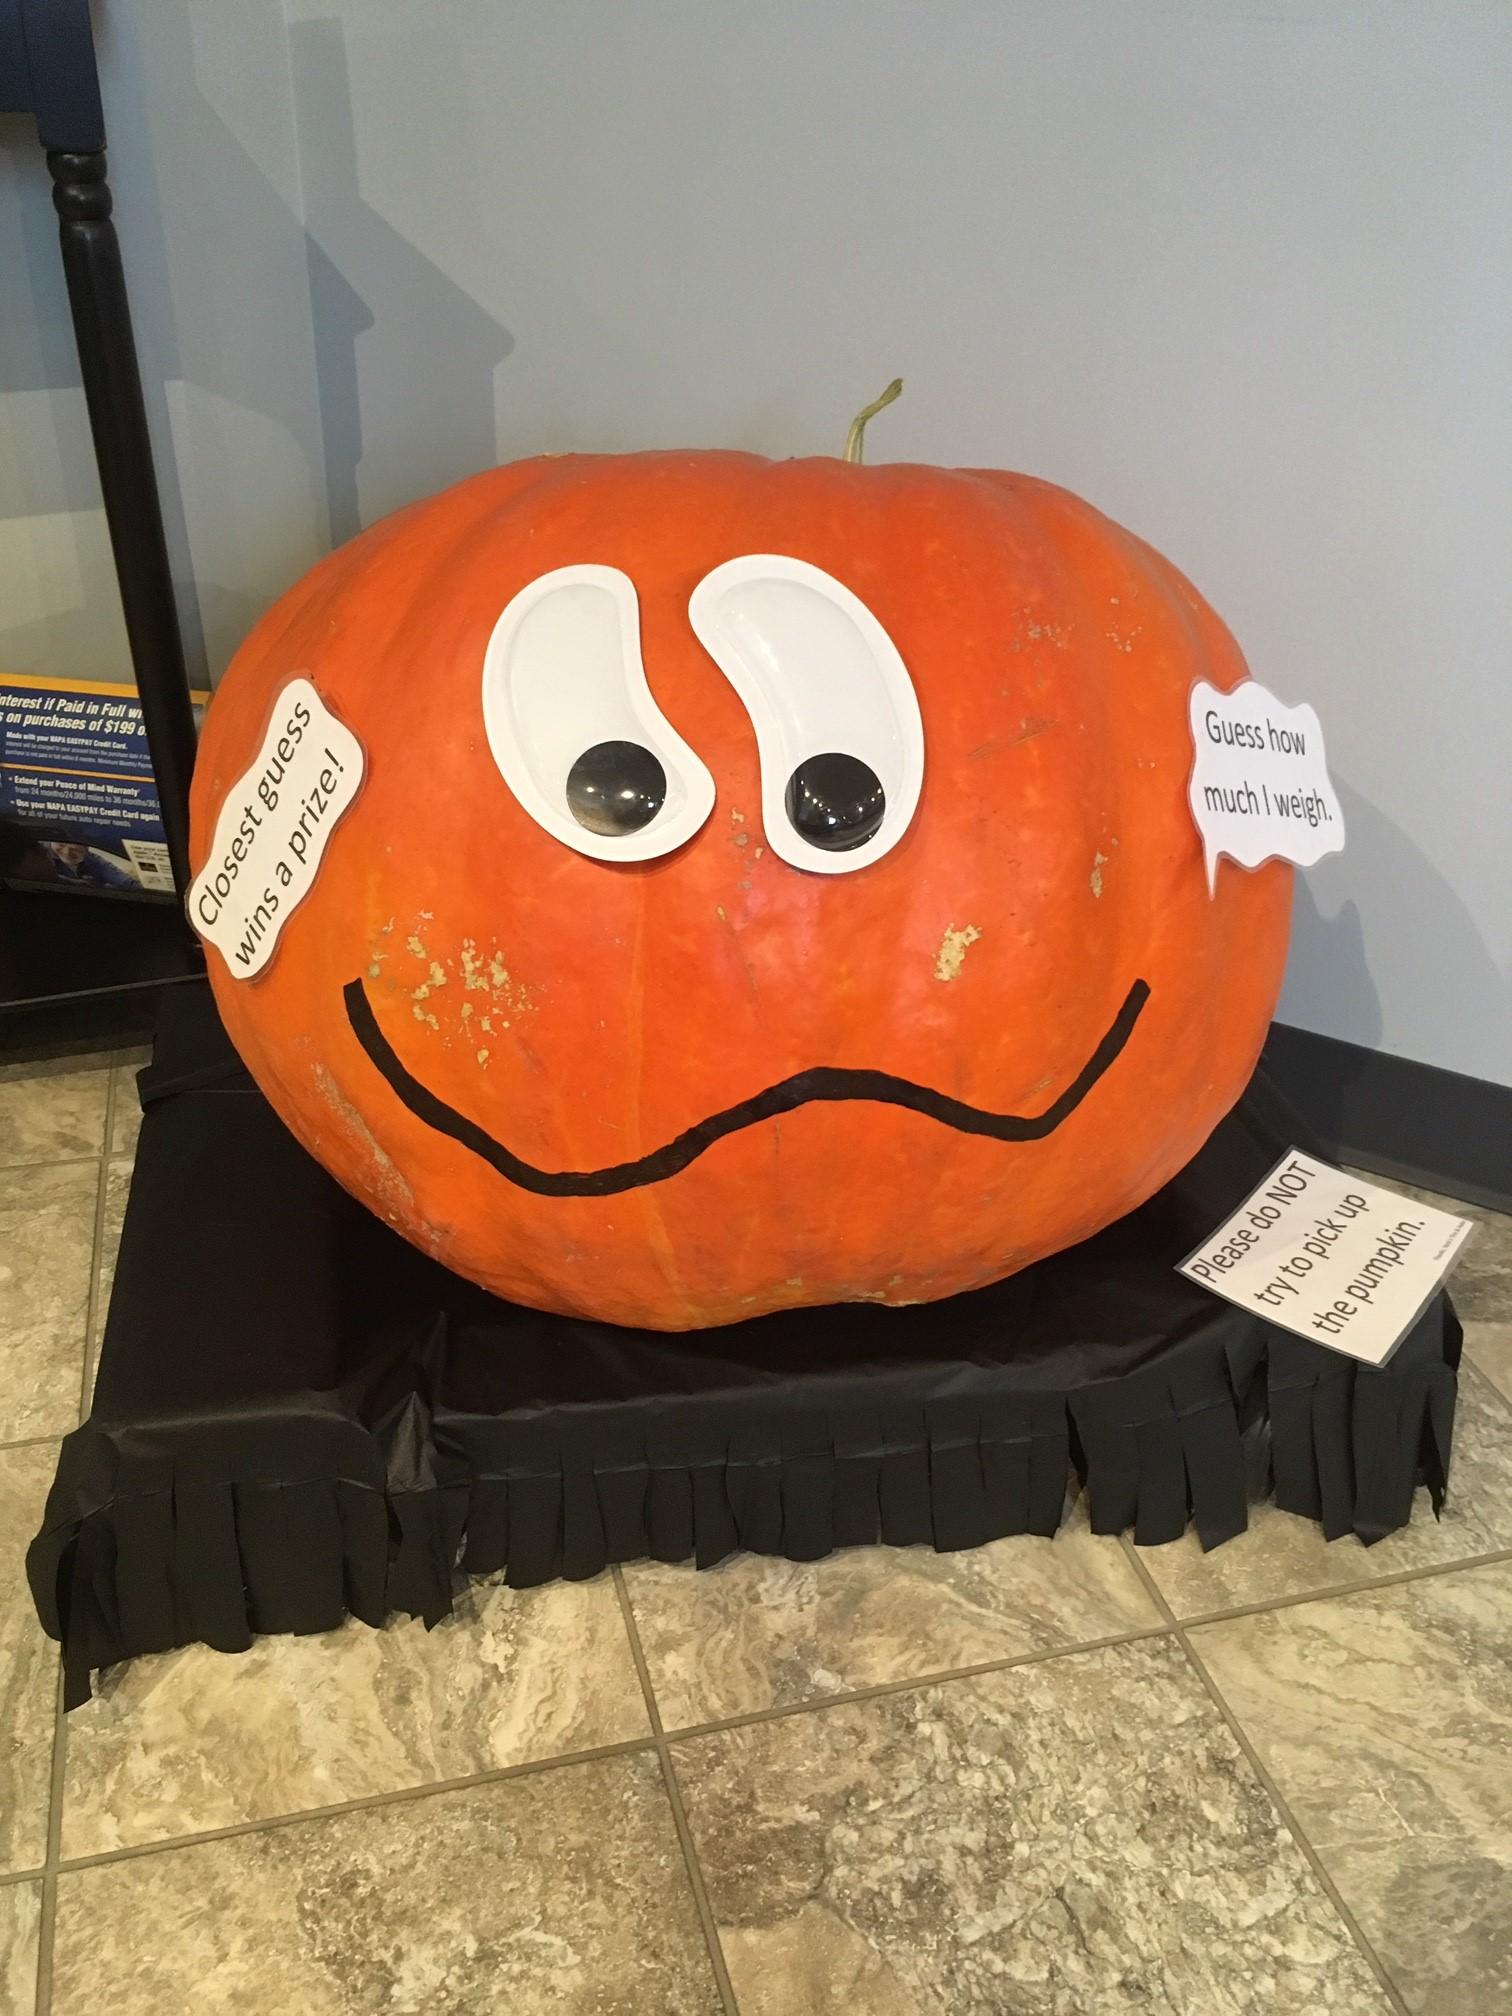 Congratulations to the winners of our 12th Annual Guess the Weight of our Giant Pumpkin Contest!